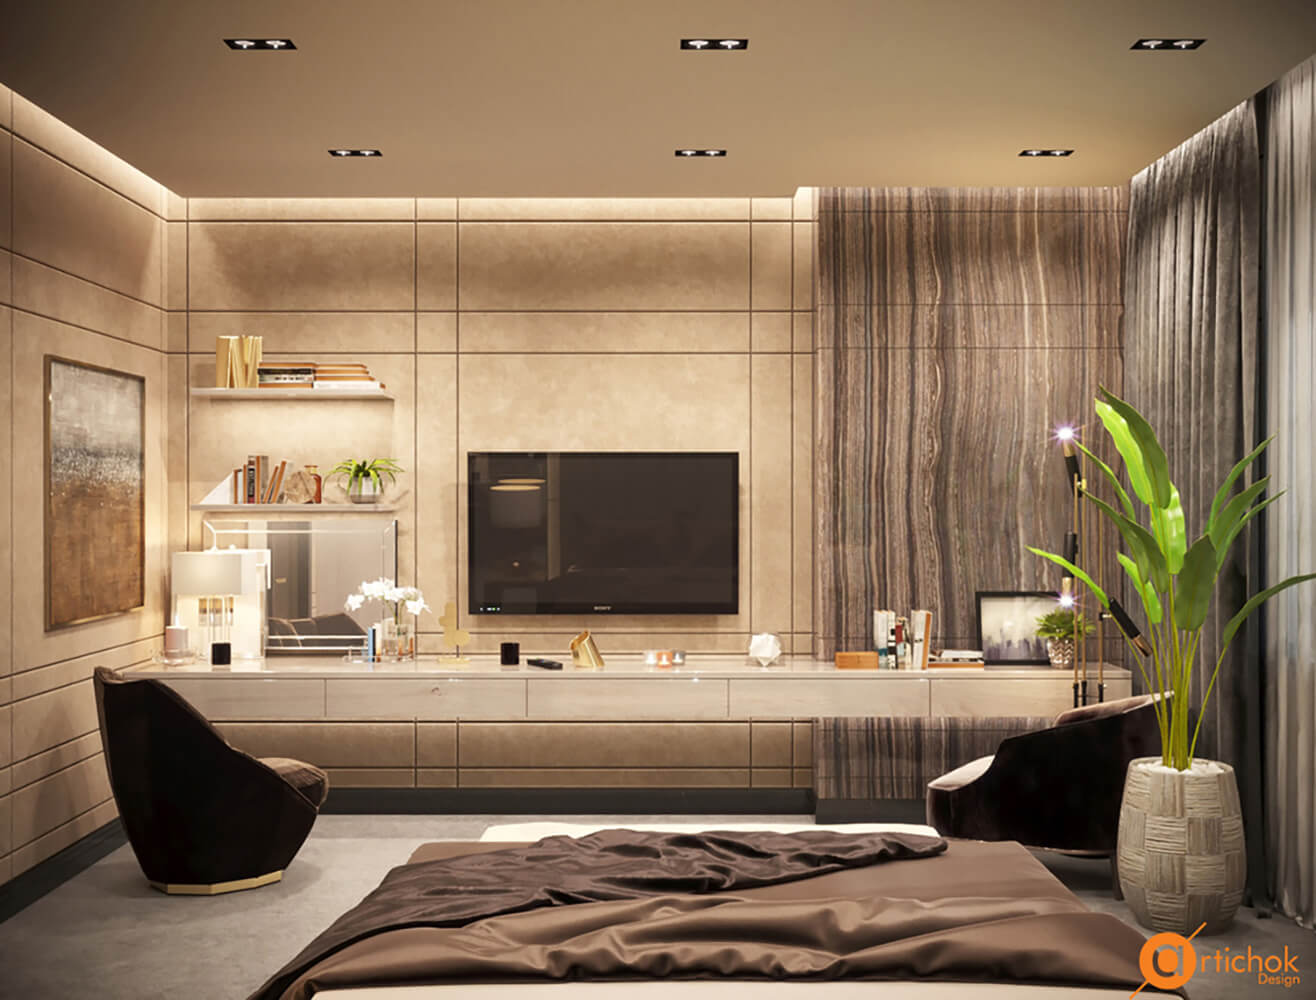 1000x800-luxury-guest-bedroom-3.3a9..pagespeed.ce.ljycrulkcu